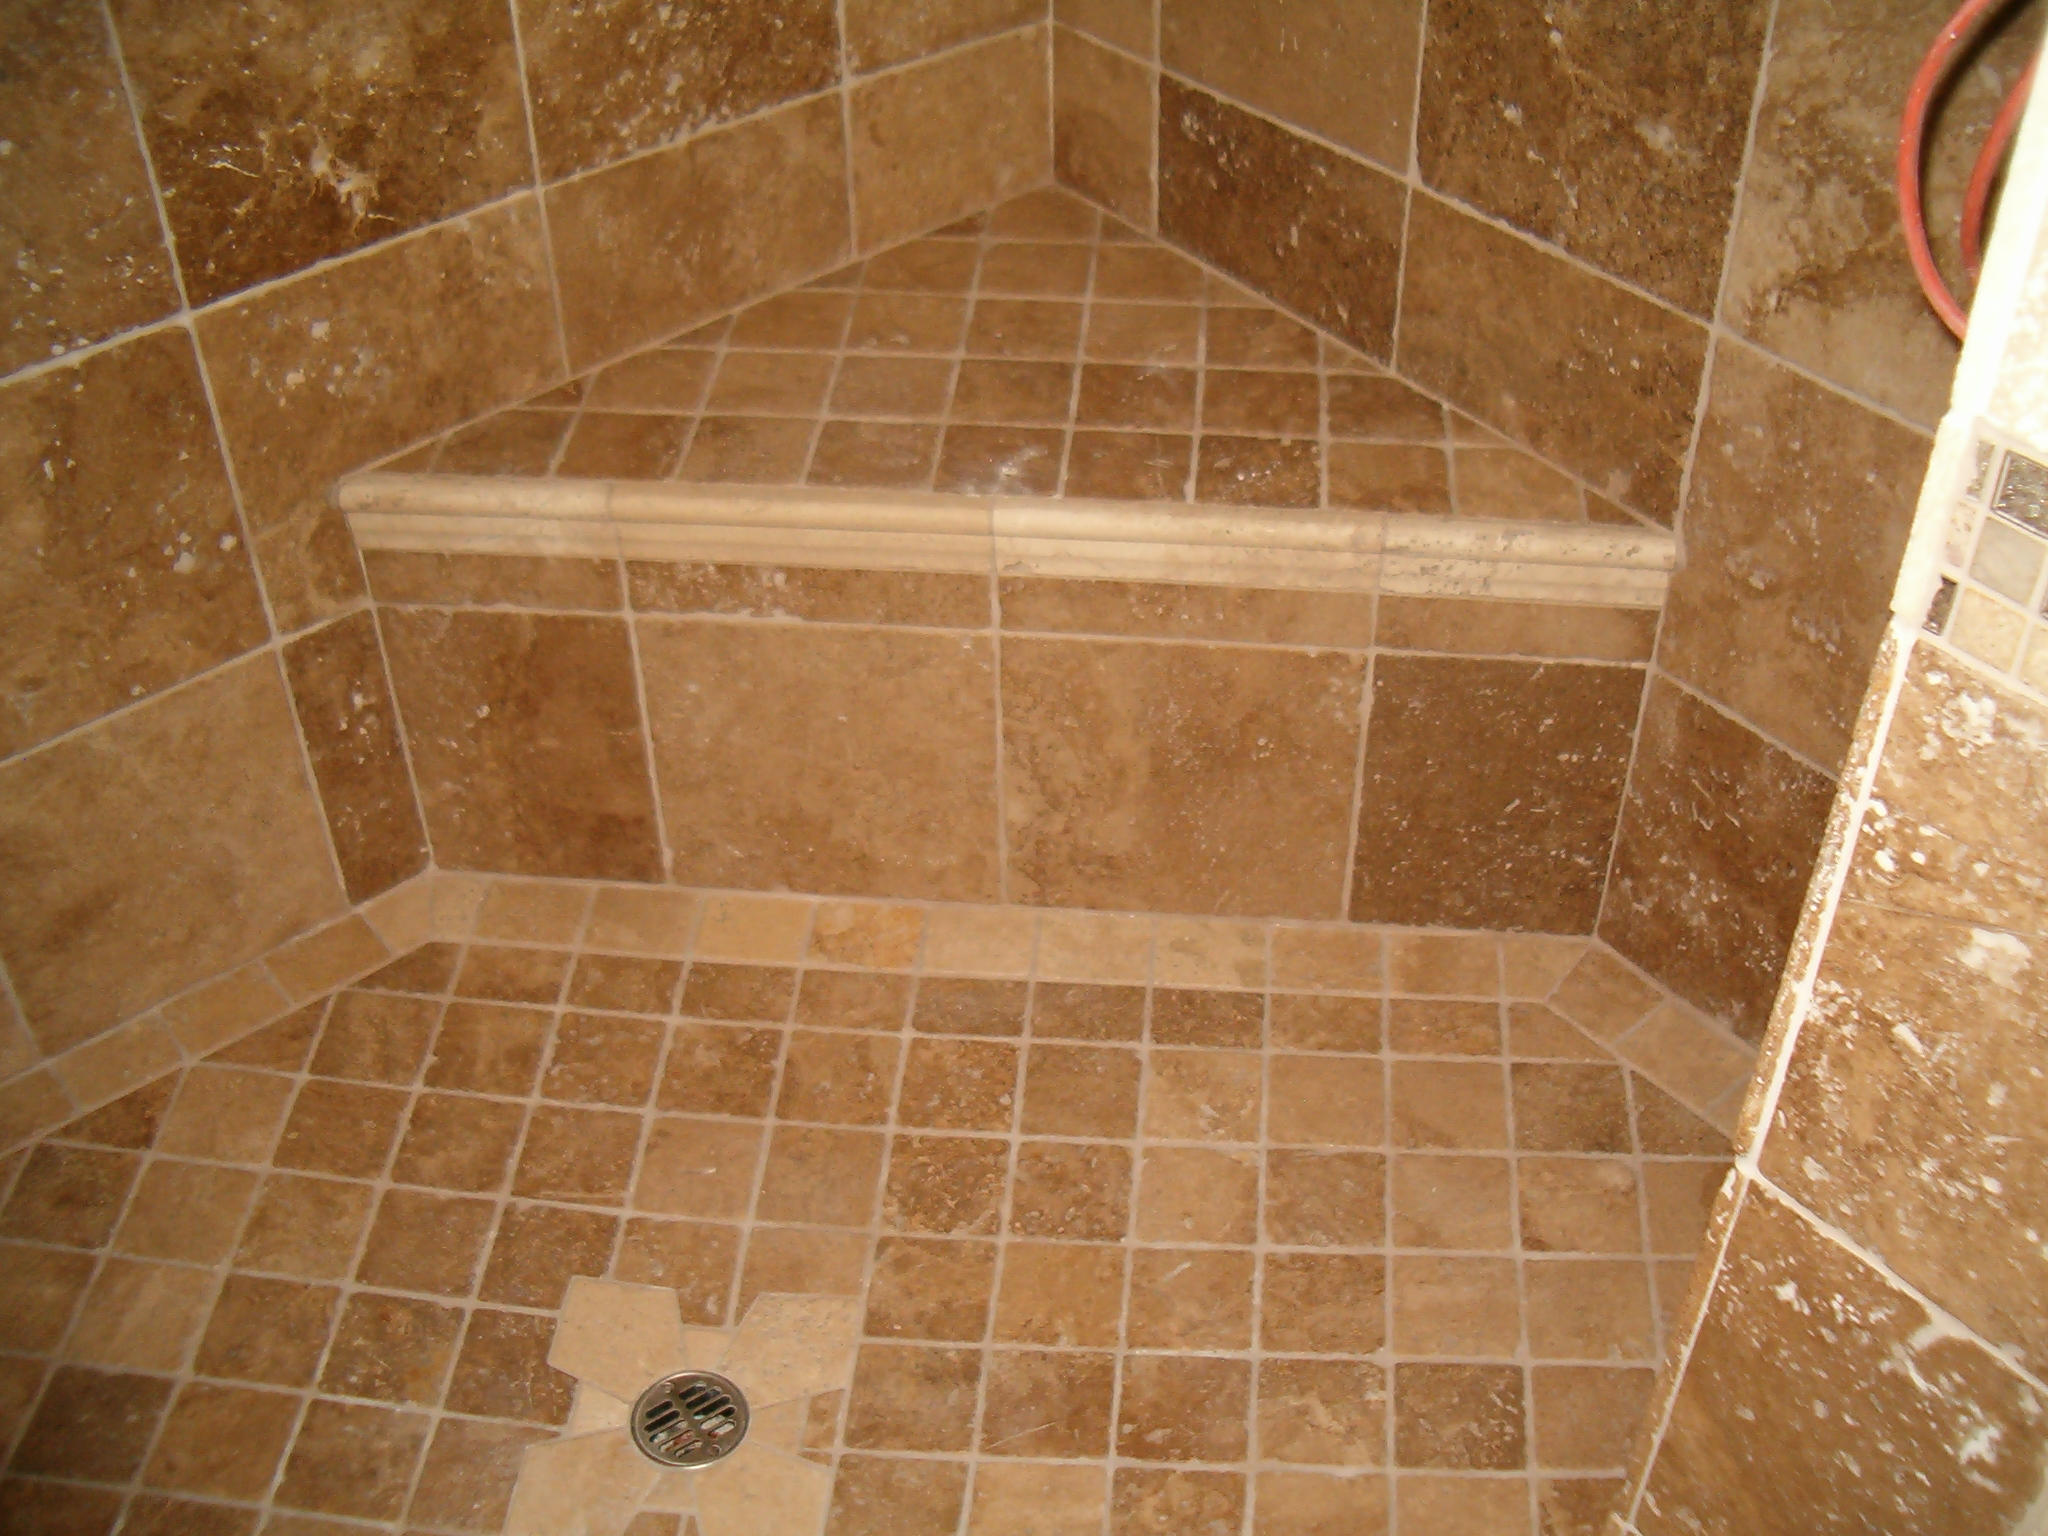 Shower anatomy for Bathroom floor tile ideas